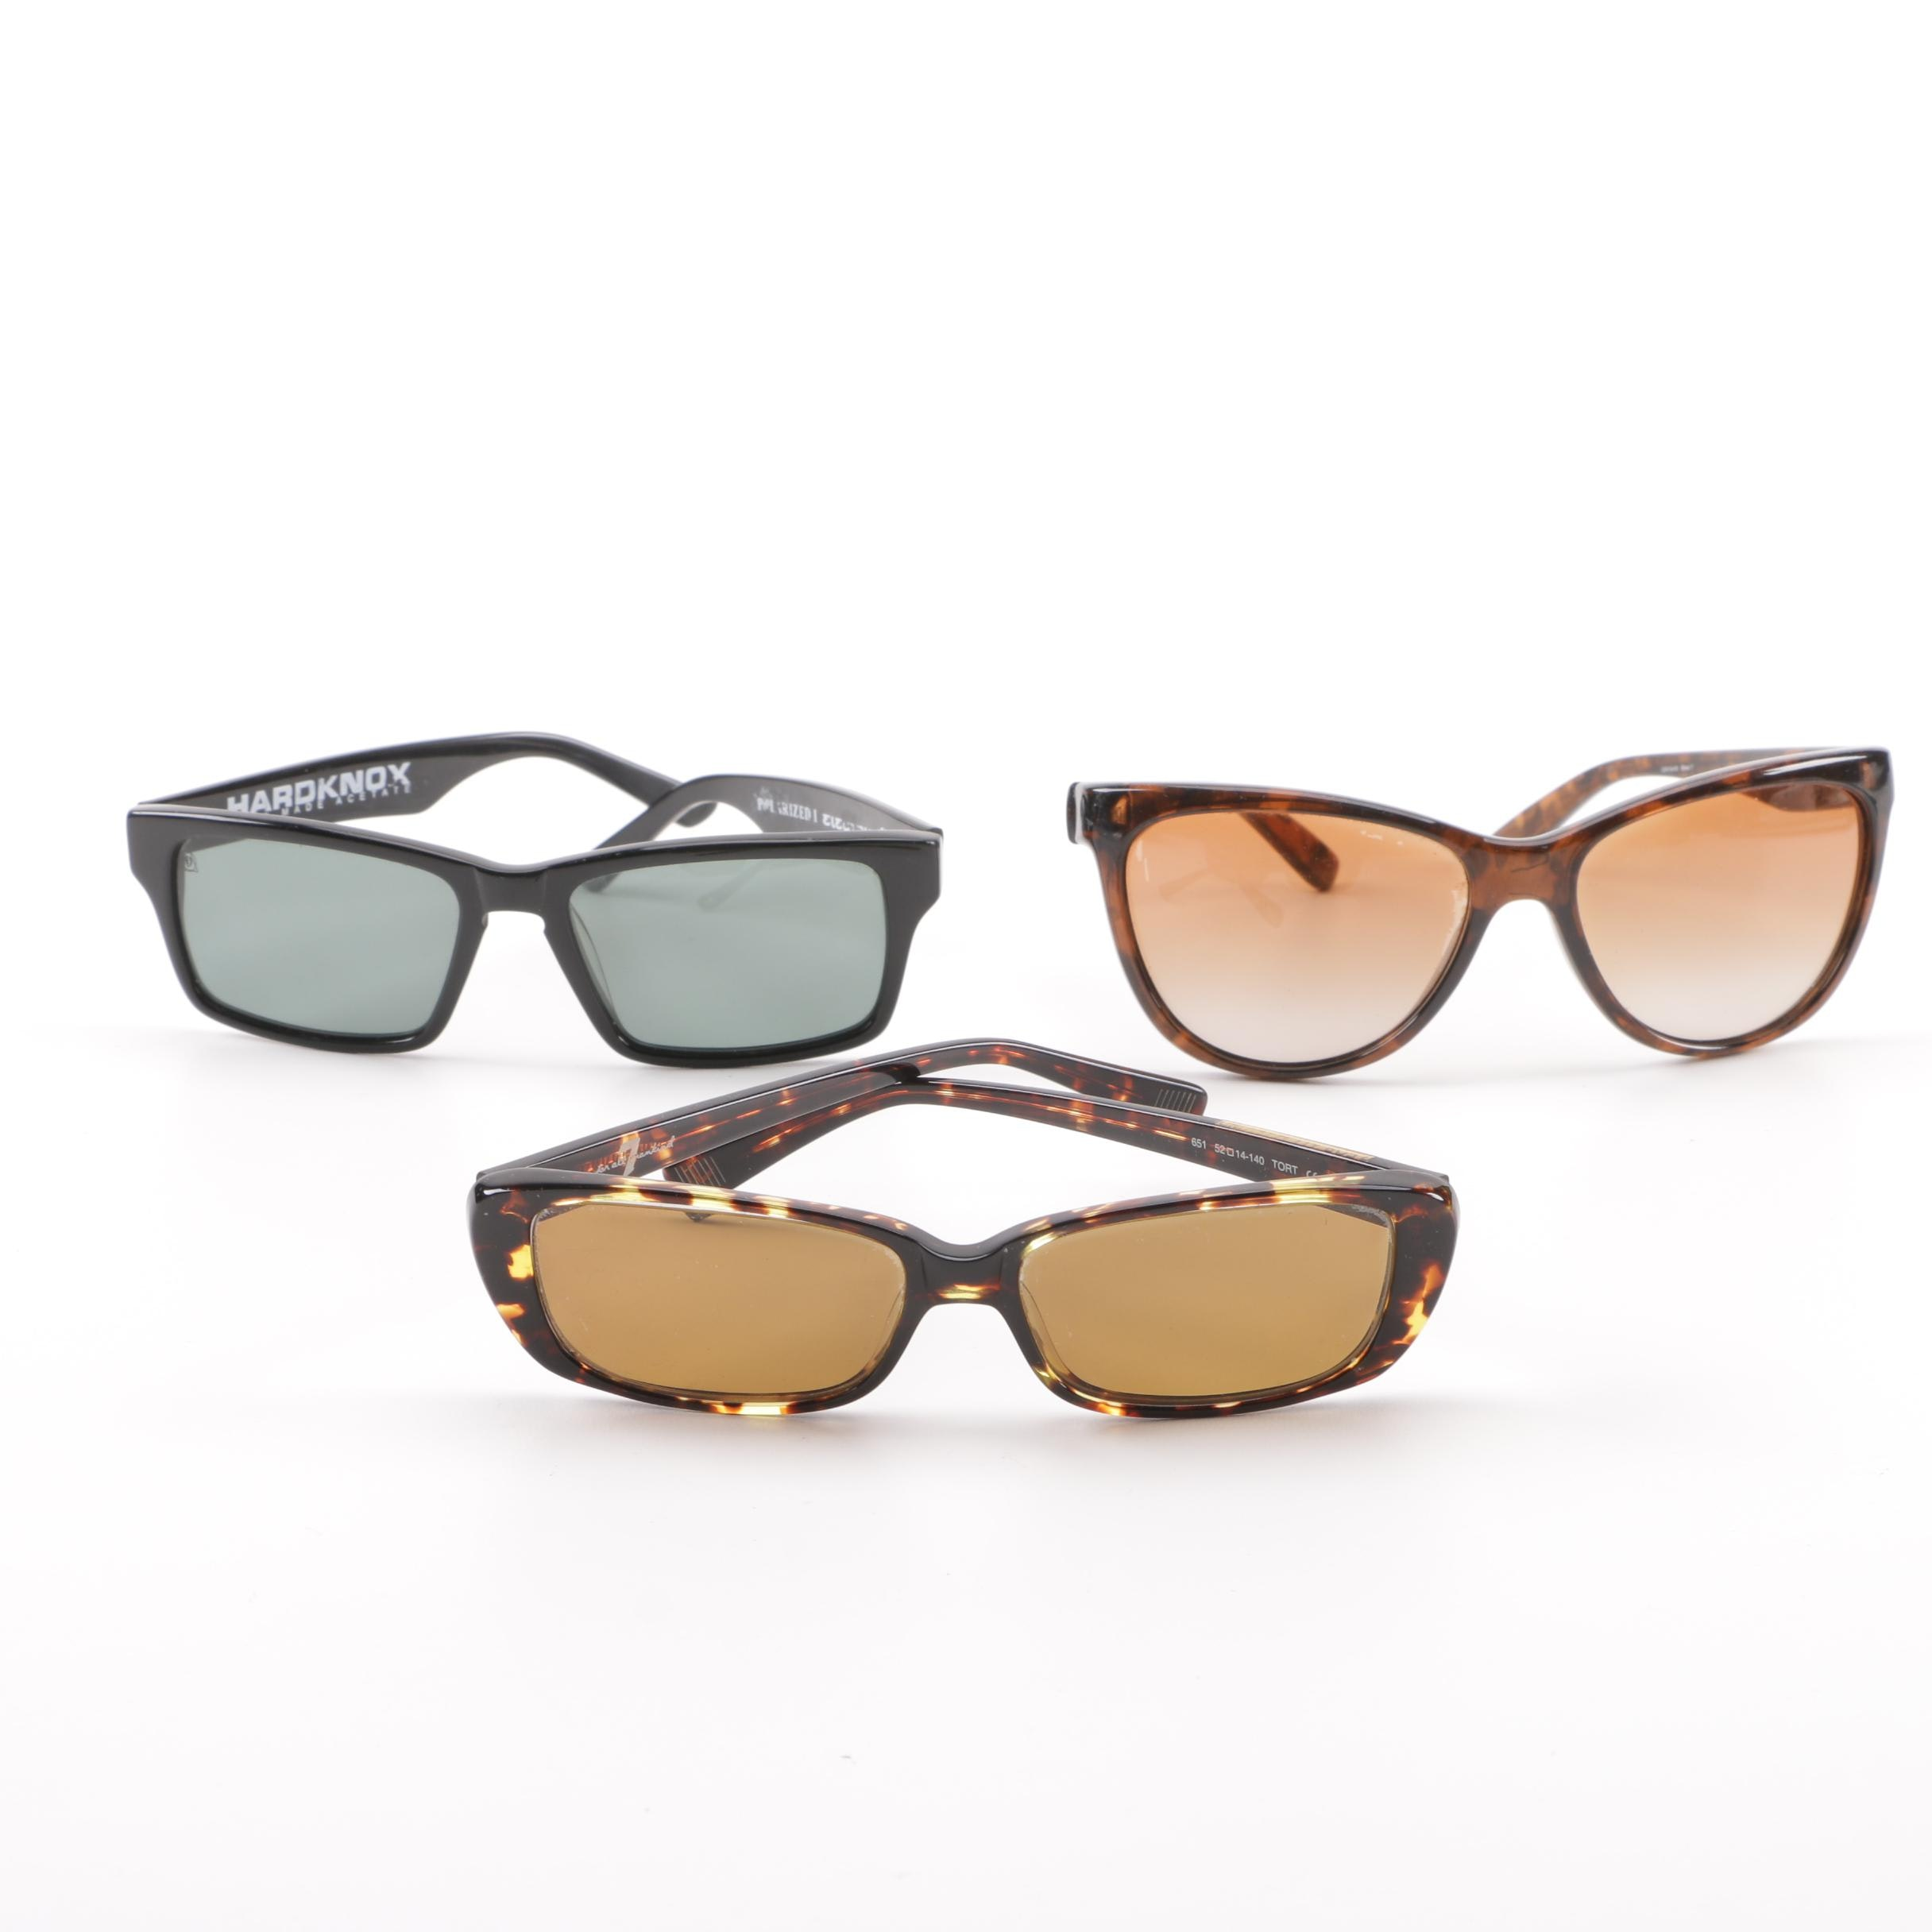 Women's and Unisex Sunglasses including Polarized Electric Hardknox